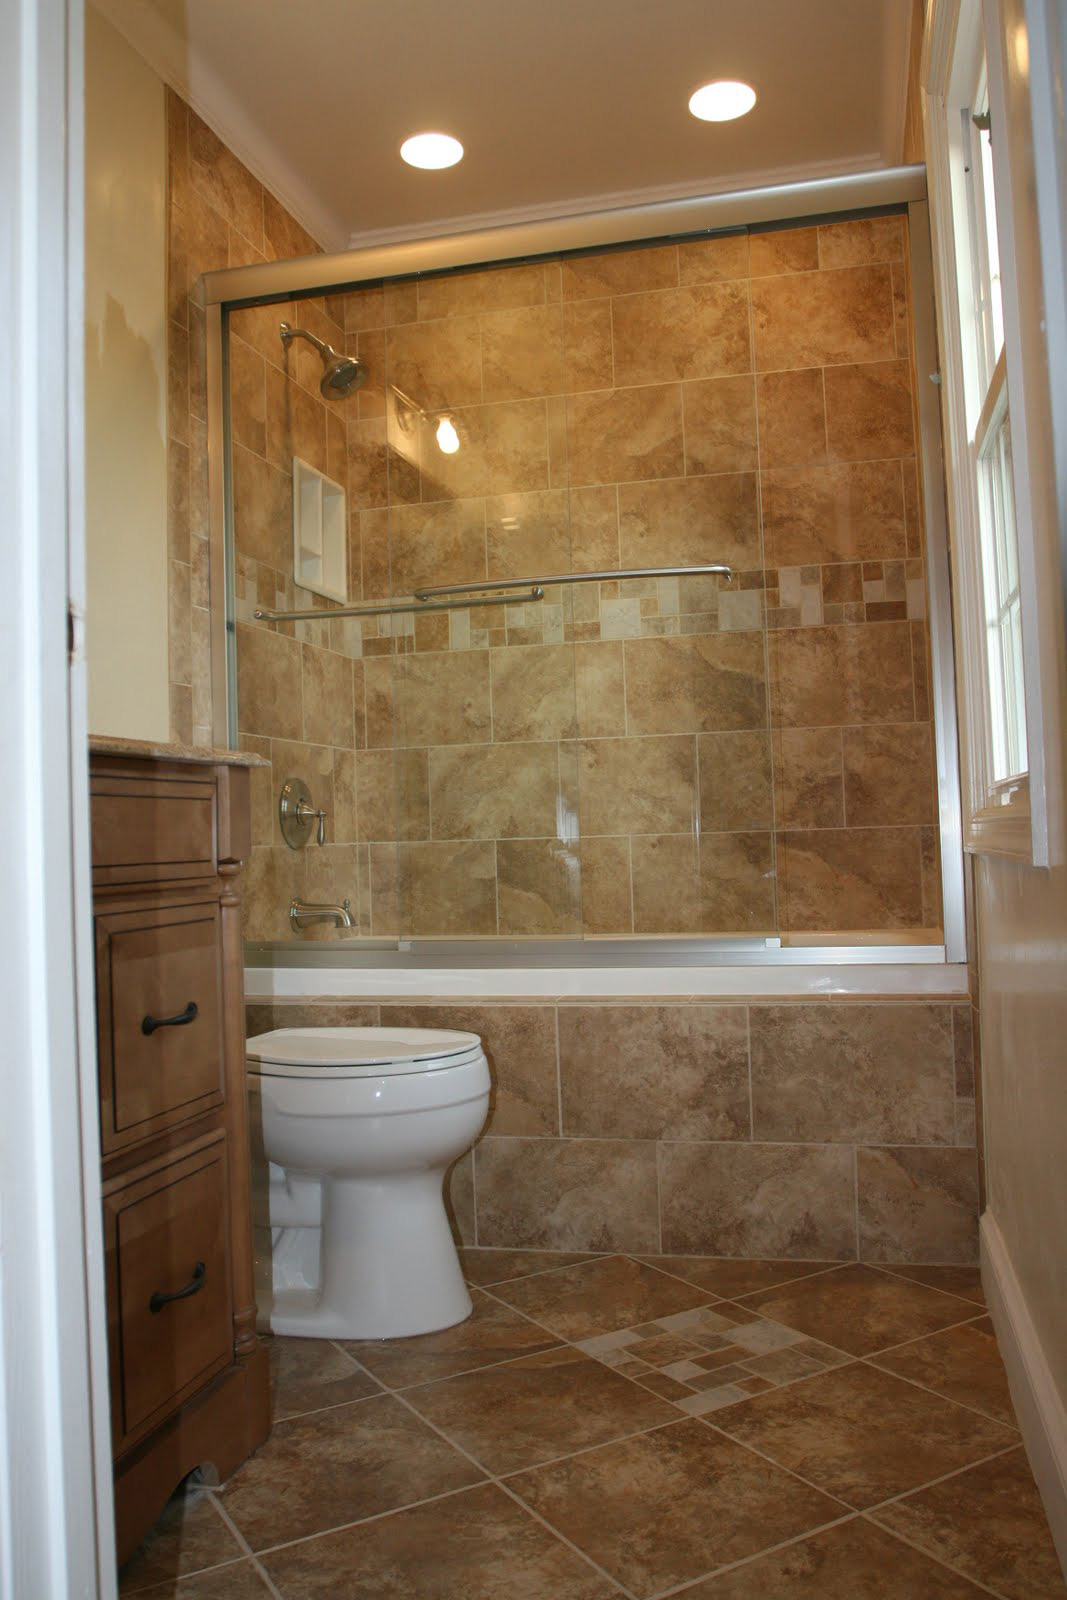 bathroom tile ideas on a budget - large and beautiful photos